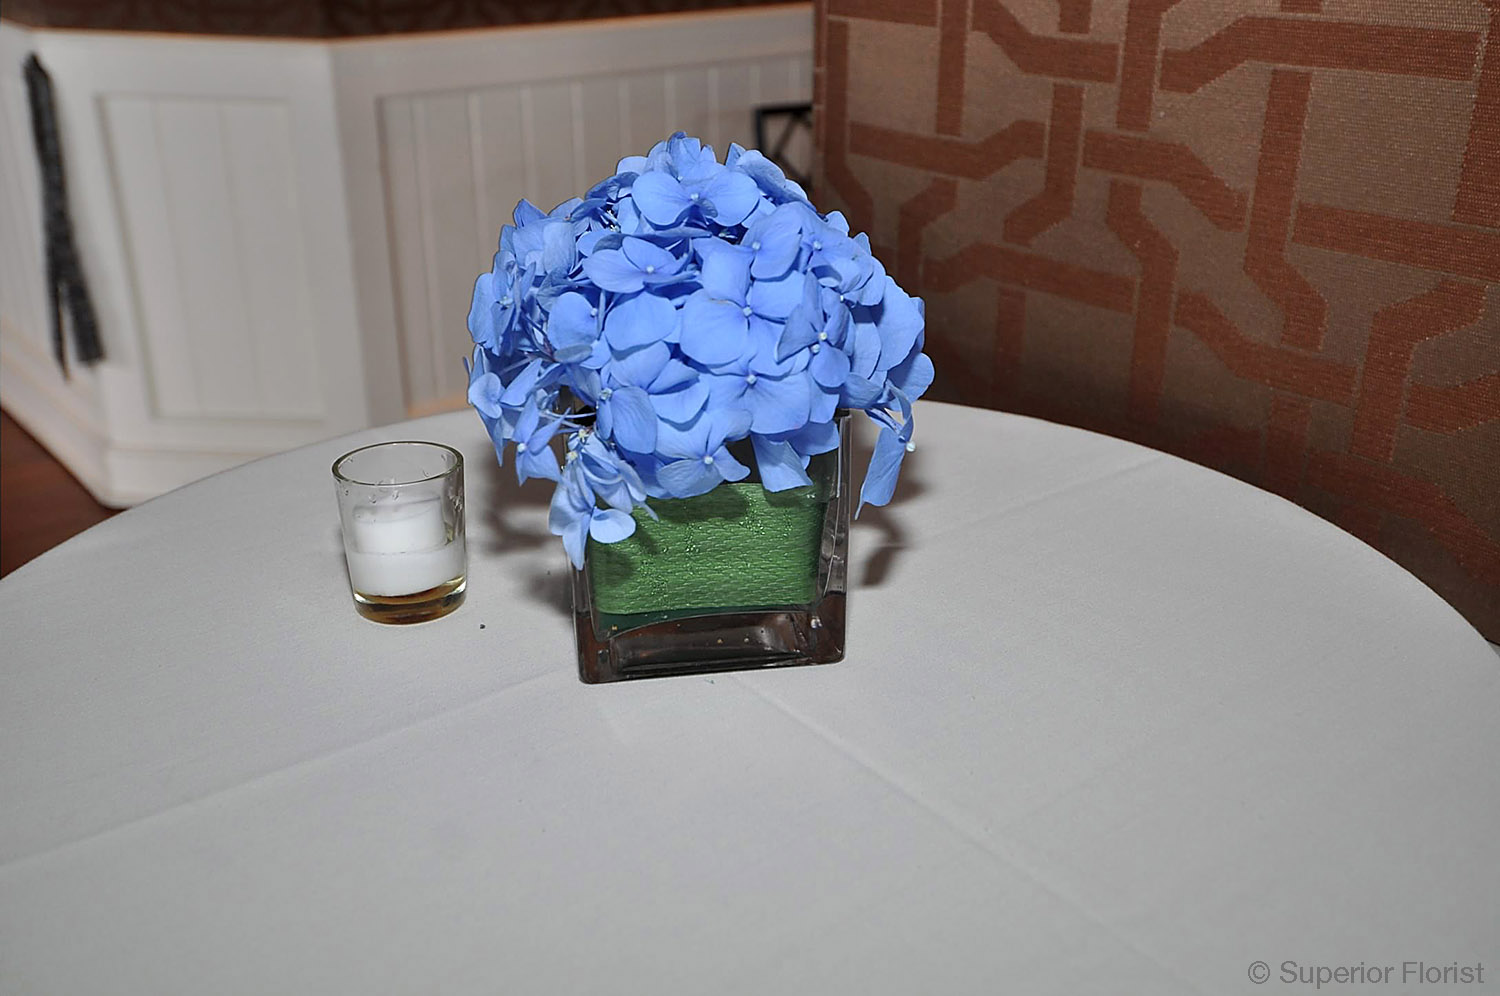 Superior Florist – Cocktail Tables: Floral arrangement of blue Hydrangeas in a small, glass cube vase. Leaf wrap lining inside of vase.